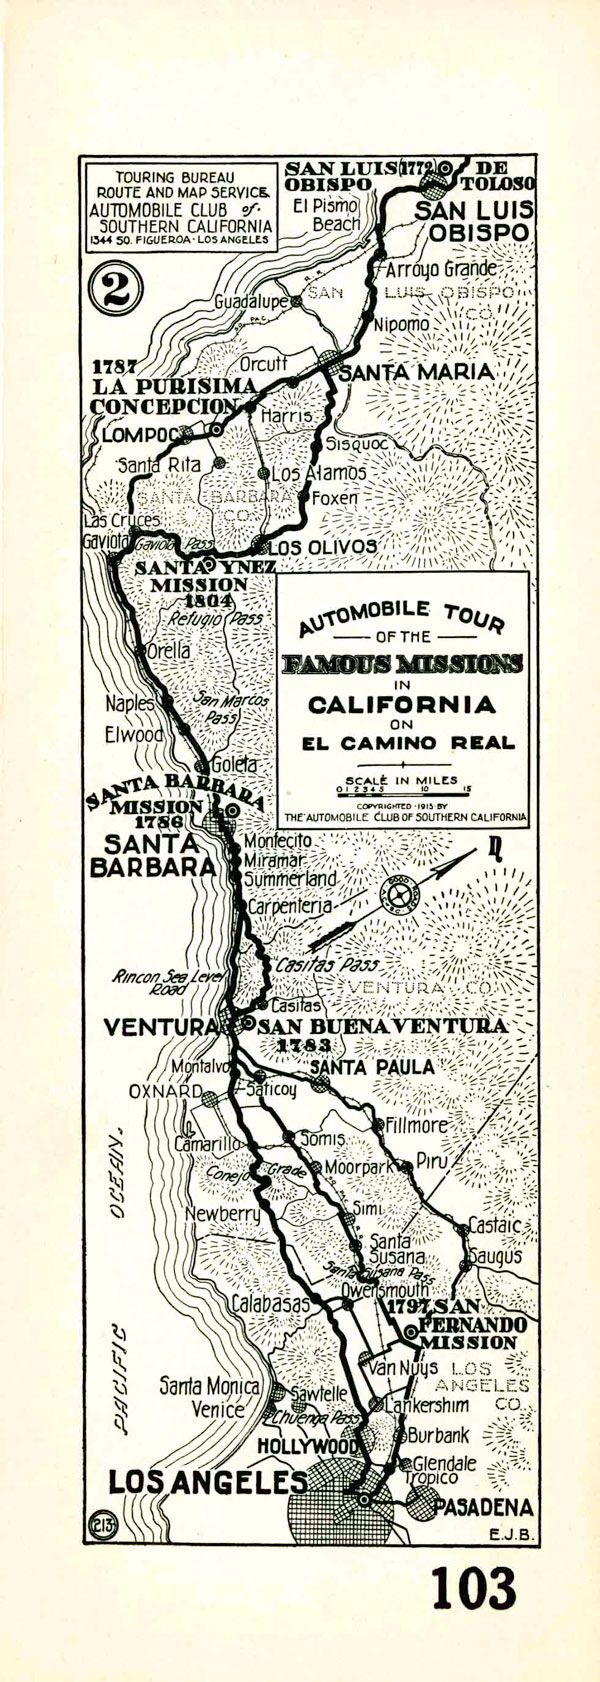 Antique LOS ANGELES MAP Of Los Angeles Black And White - Los angeles route map